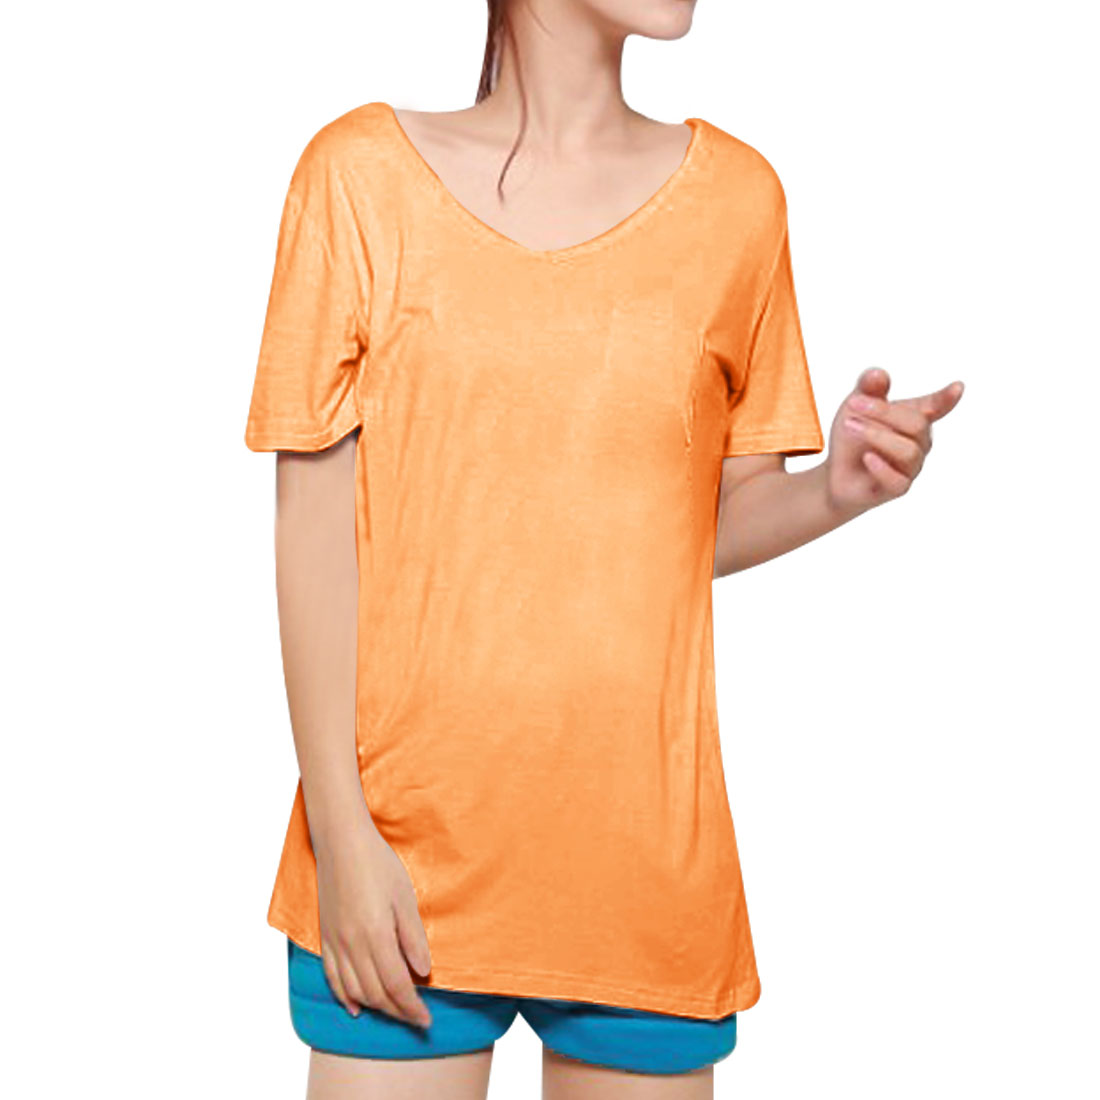 Patch Pocket Orange Candy Color T-Shirt Blouse XS for Women